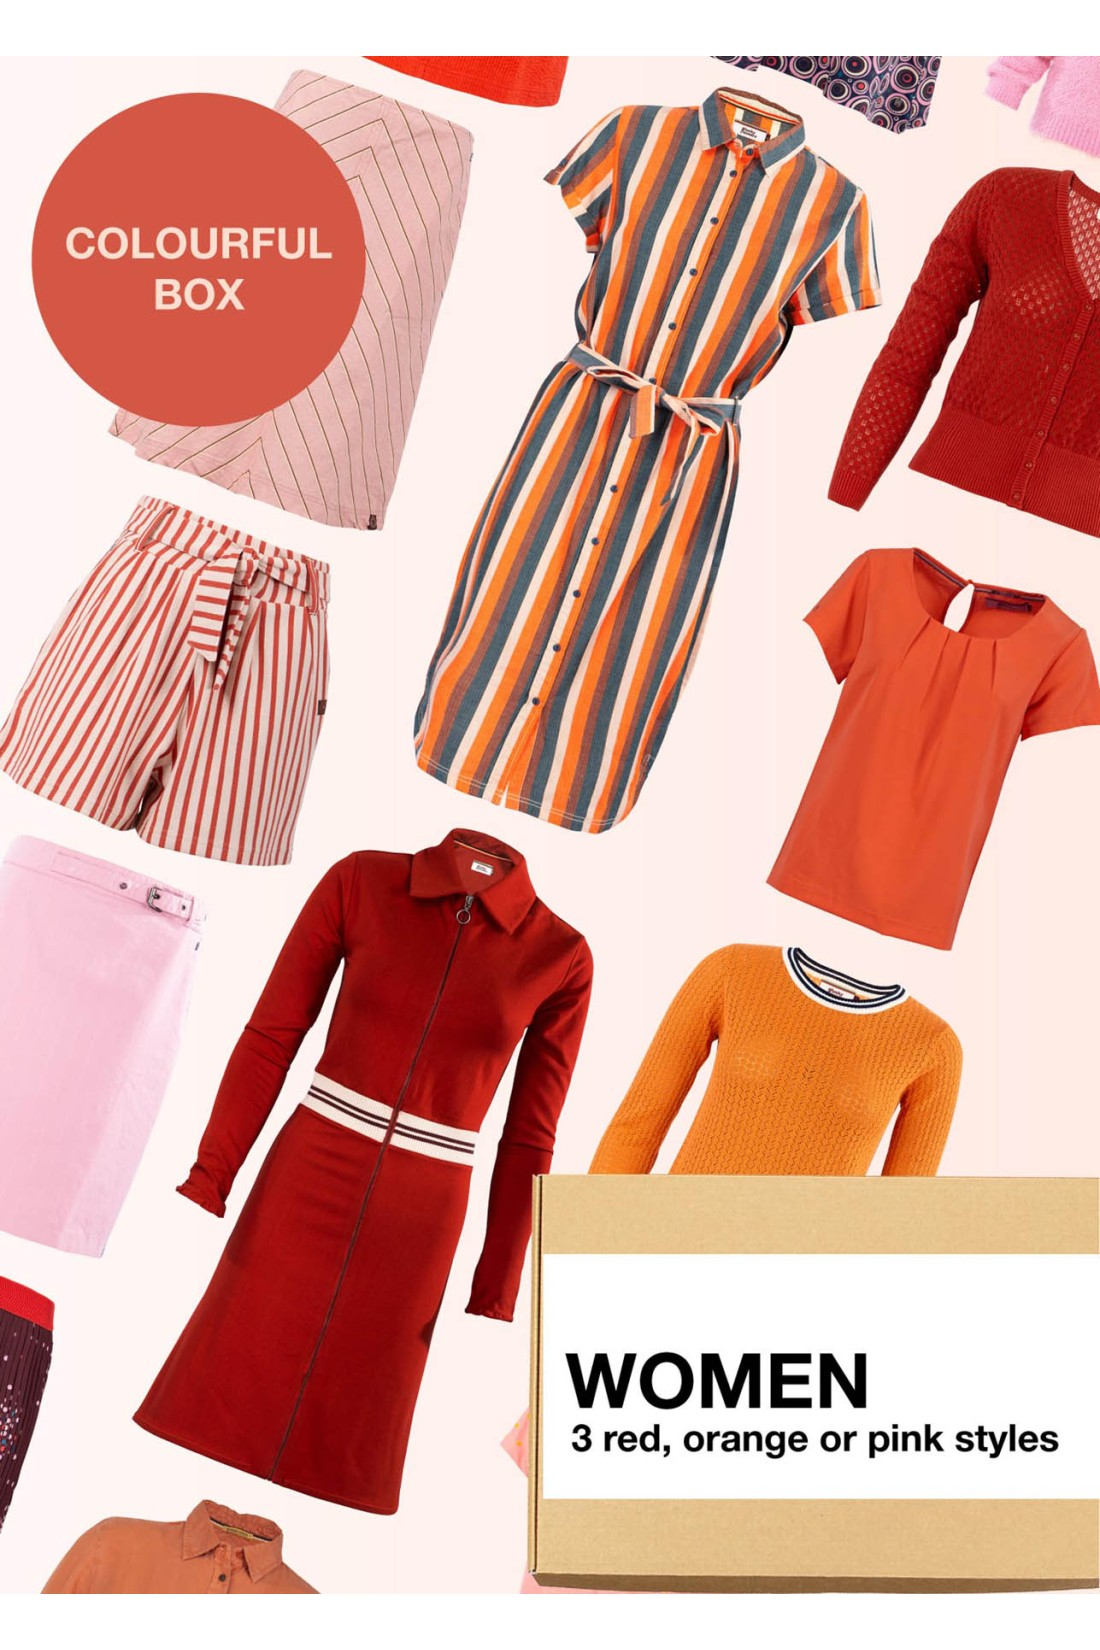 Surprise Box Women - Red Orange Box 3 Styles With Red Or Orange Or Pink In It